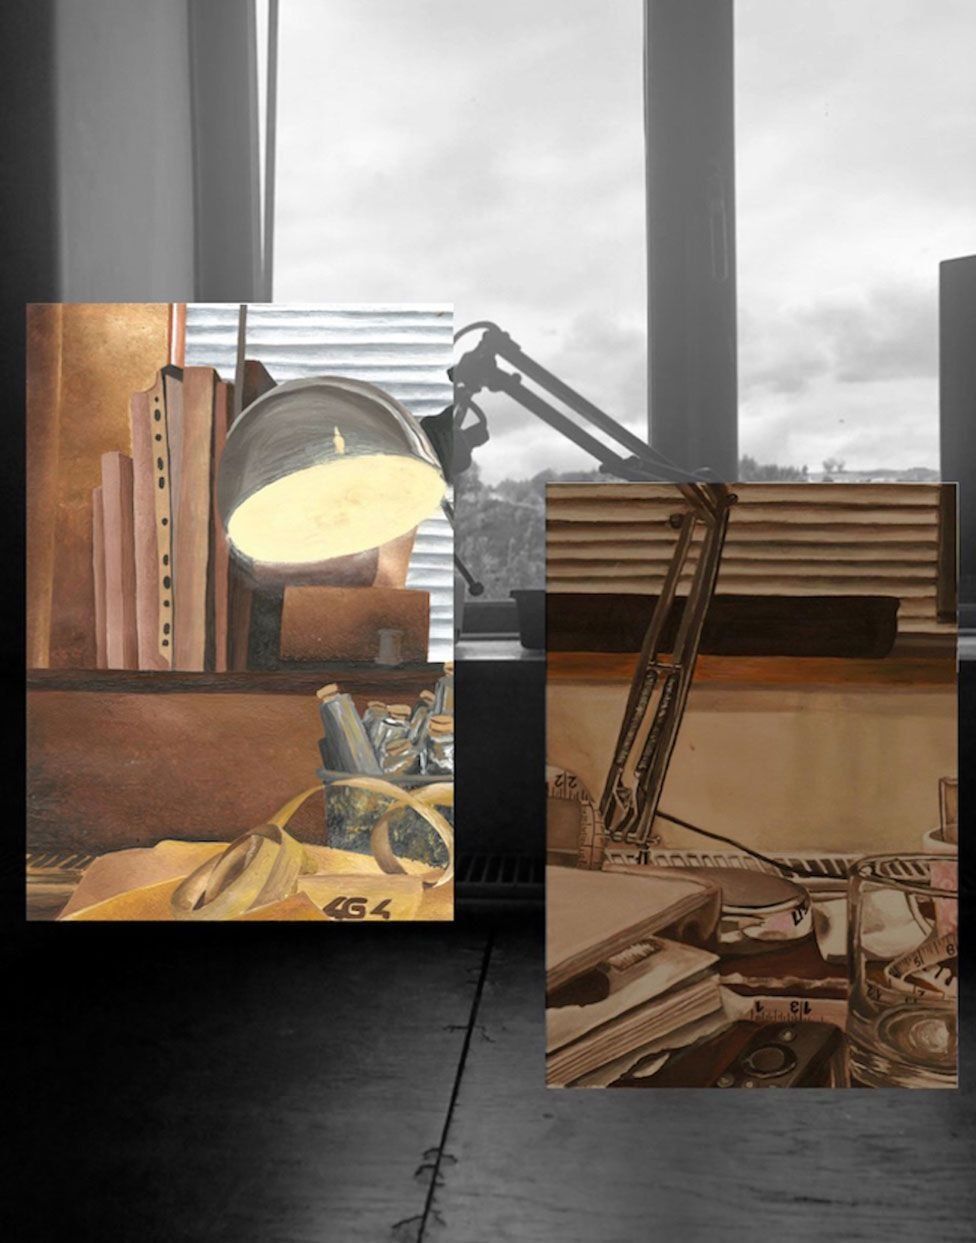 A photo and art montage showing a desk lamp next to a window